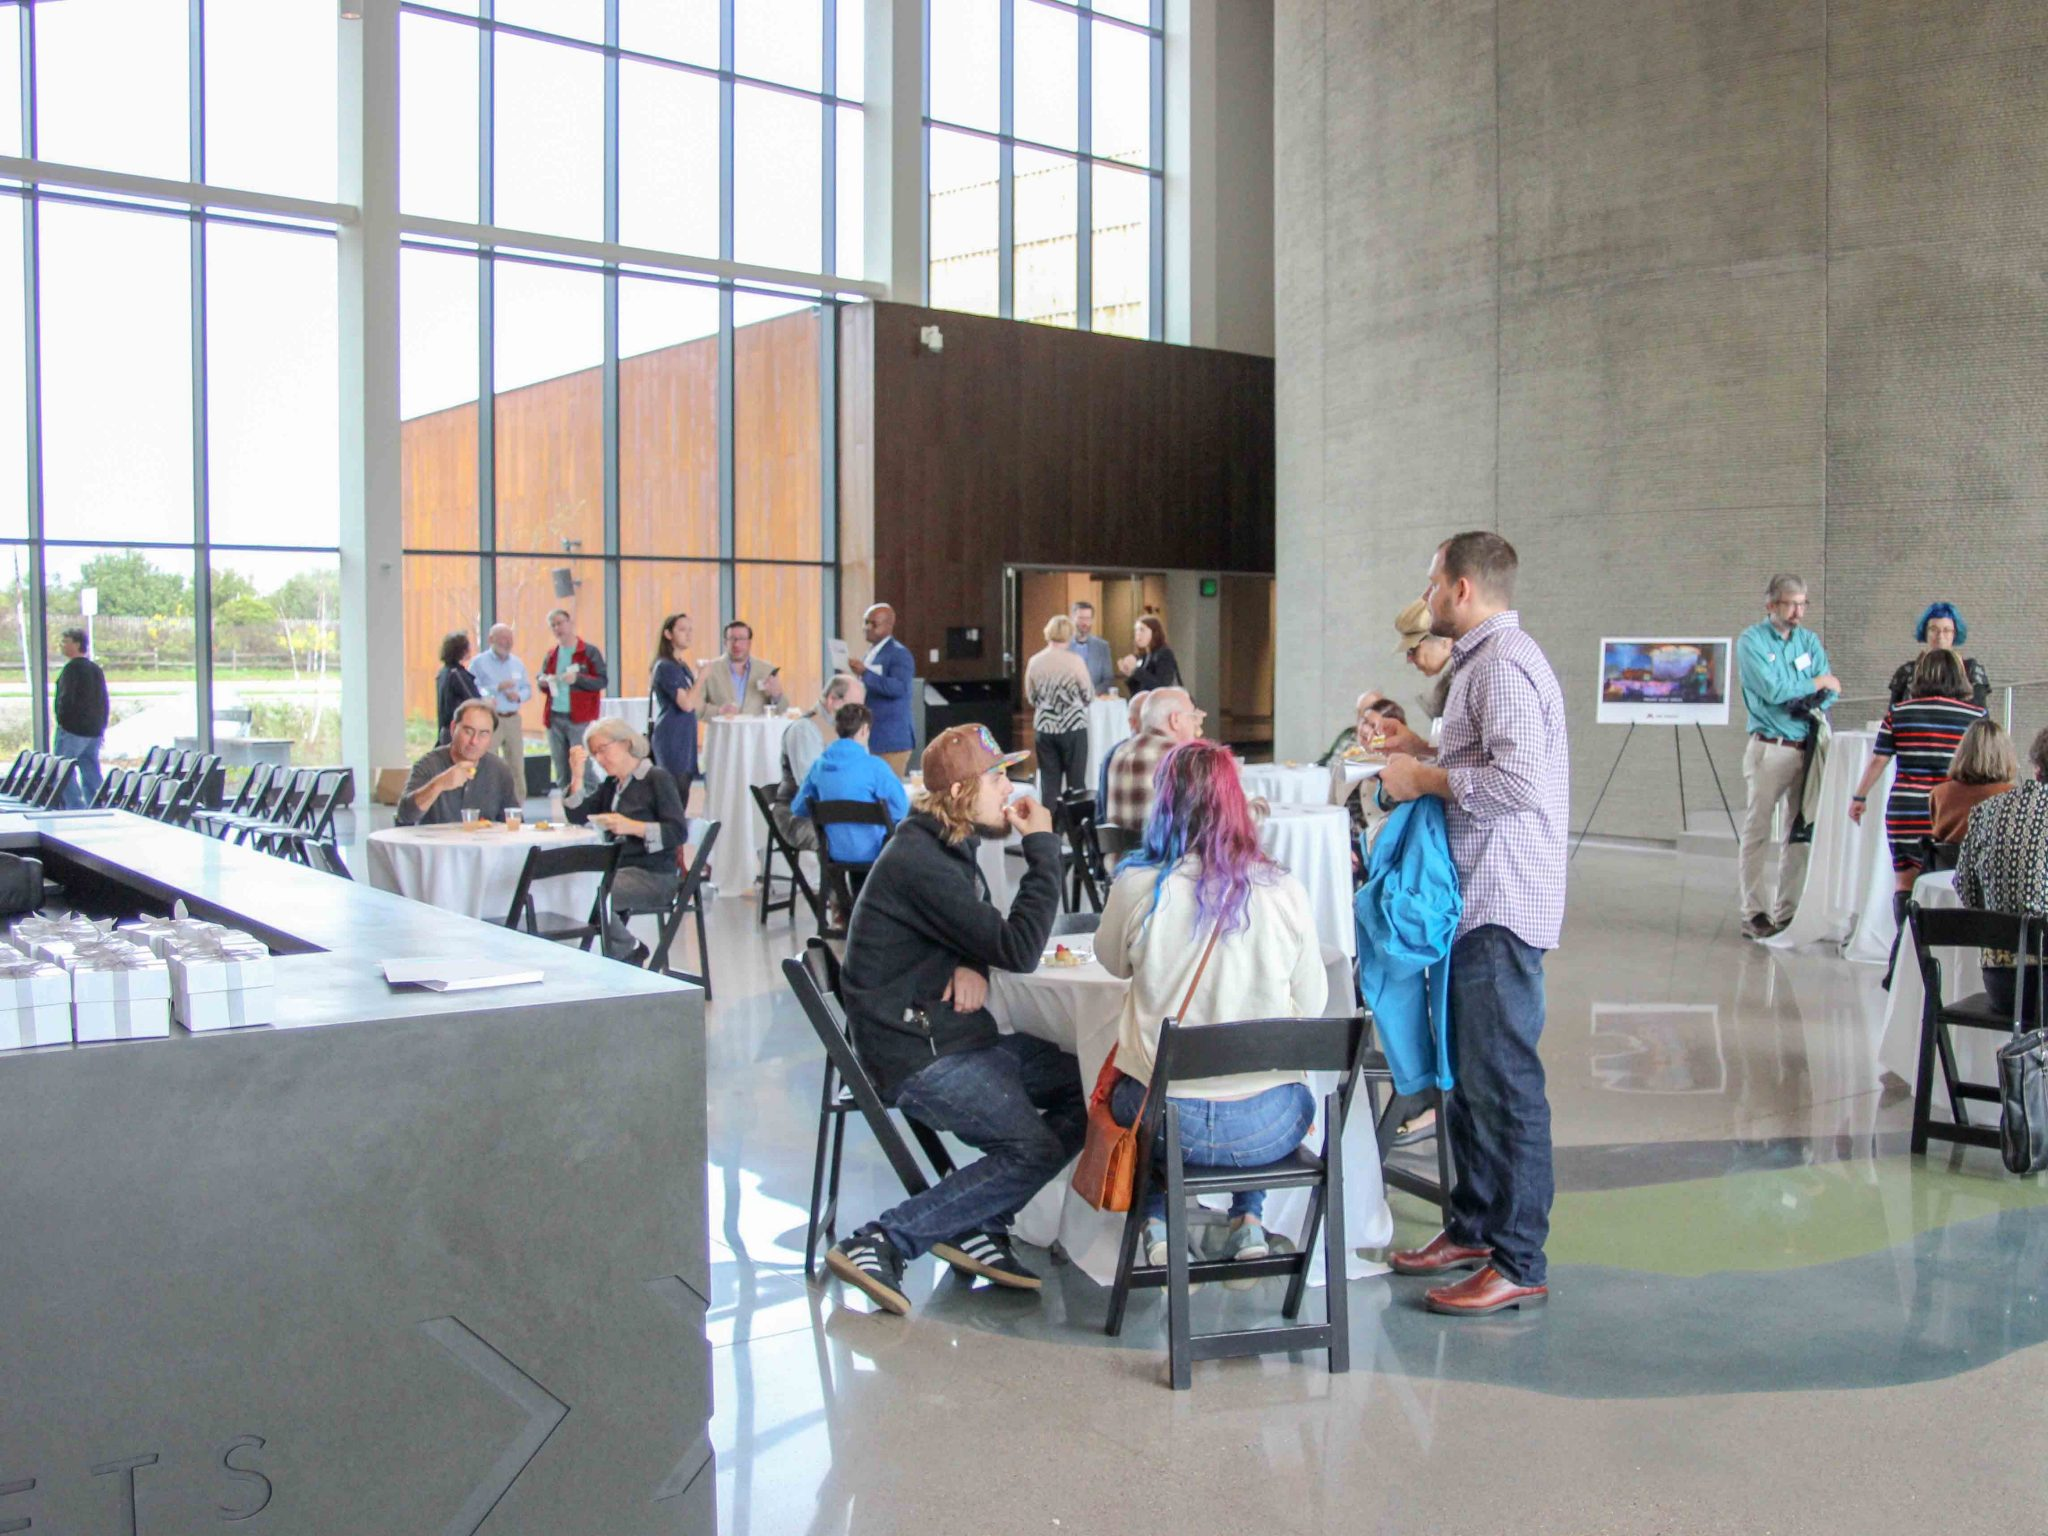 Groups of people chat throughout Horizon Hall, some sitting at tables